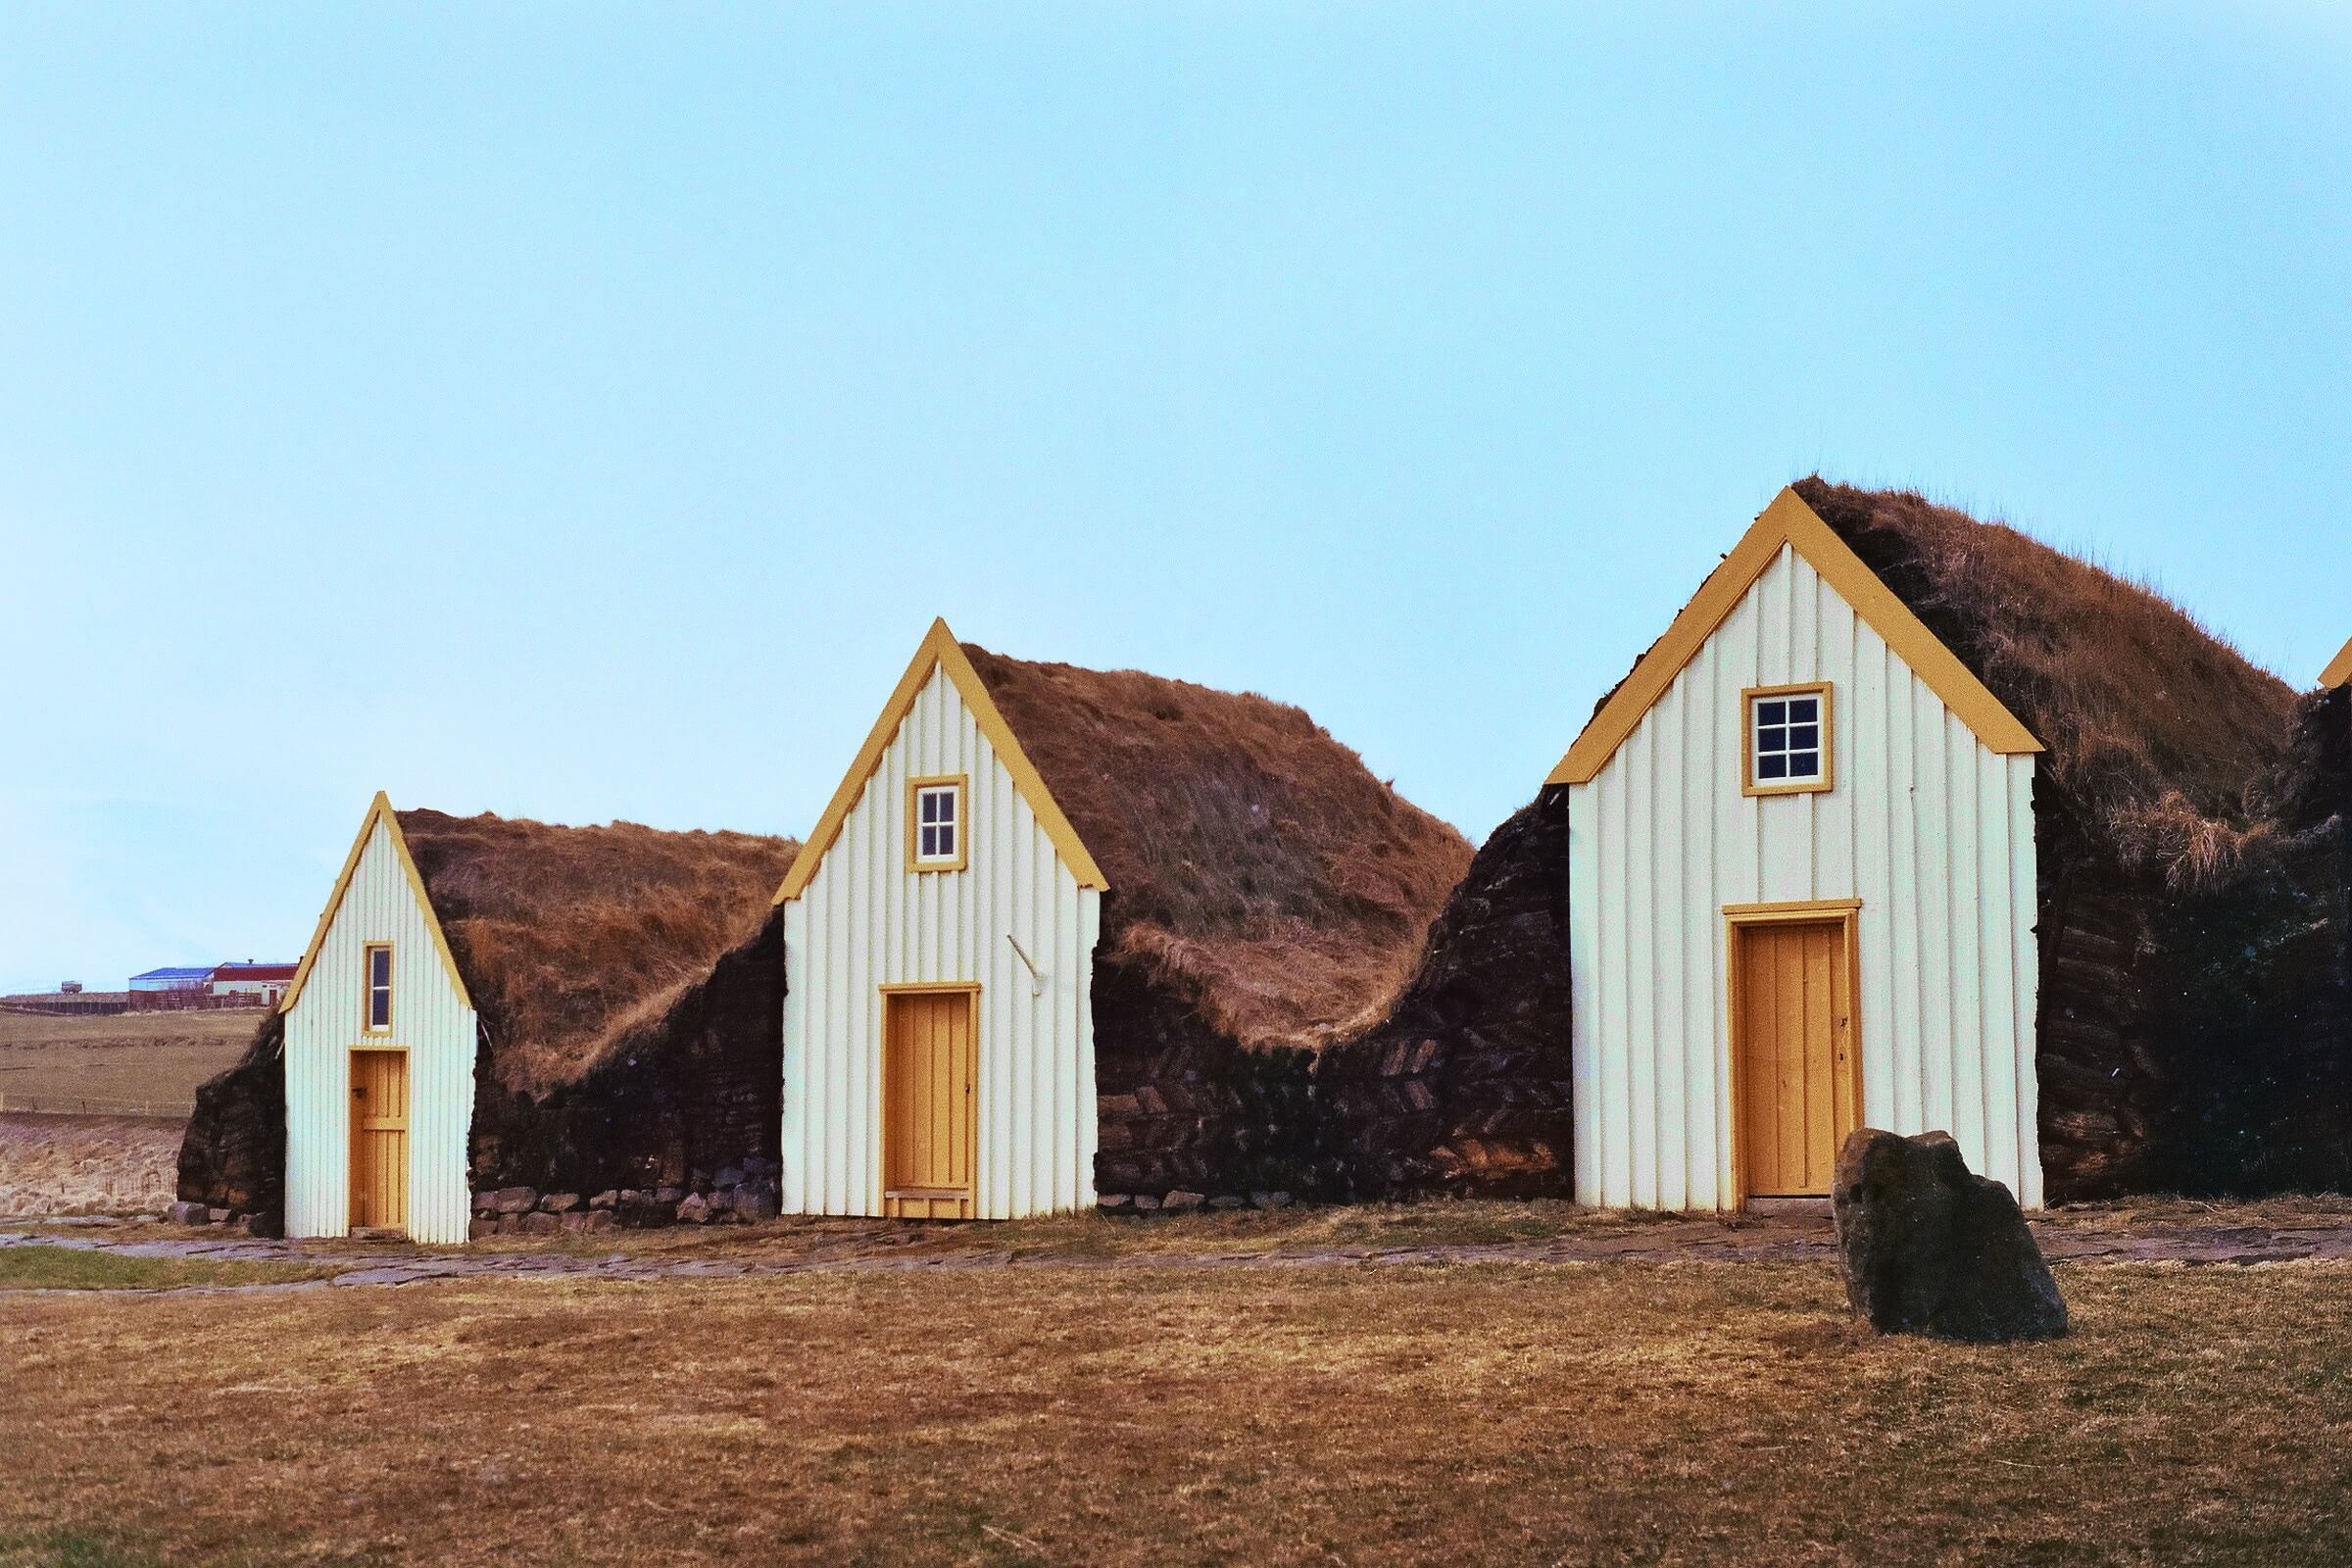 More homeowners are opting for tiny homes